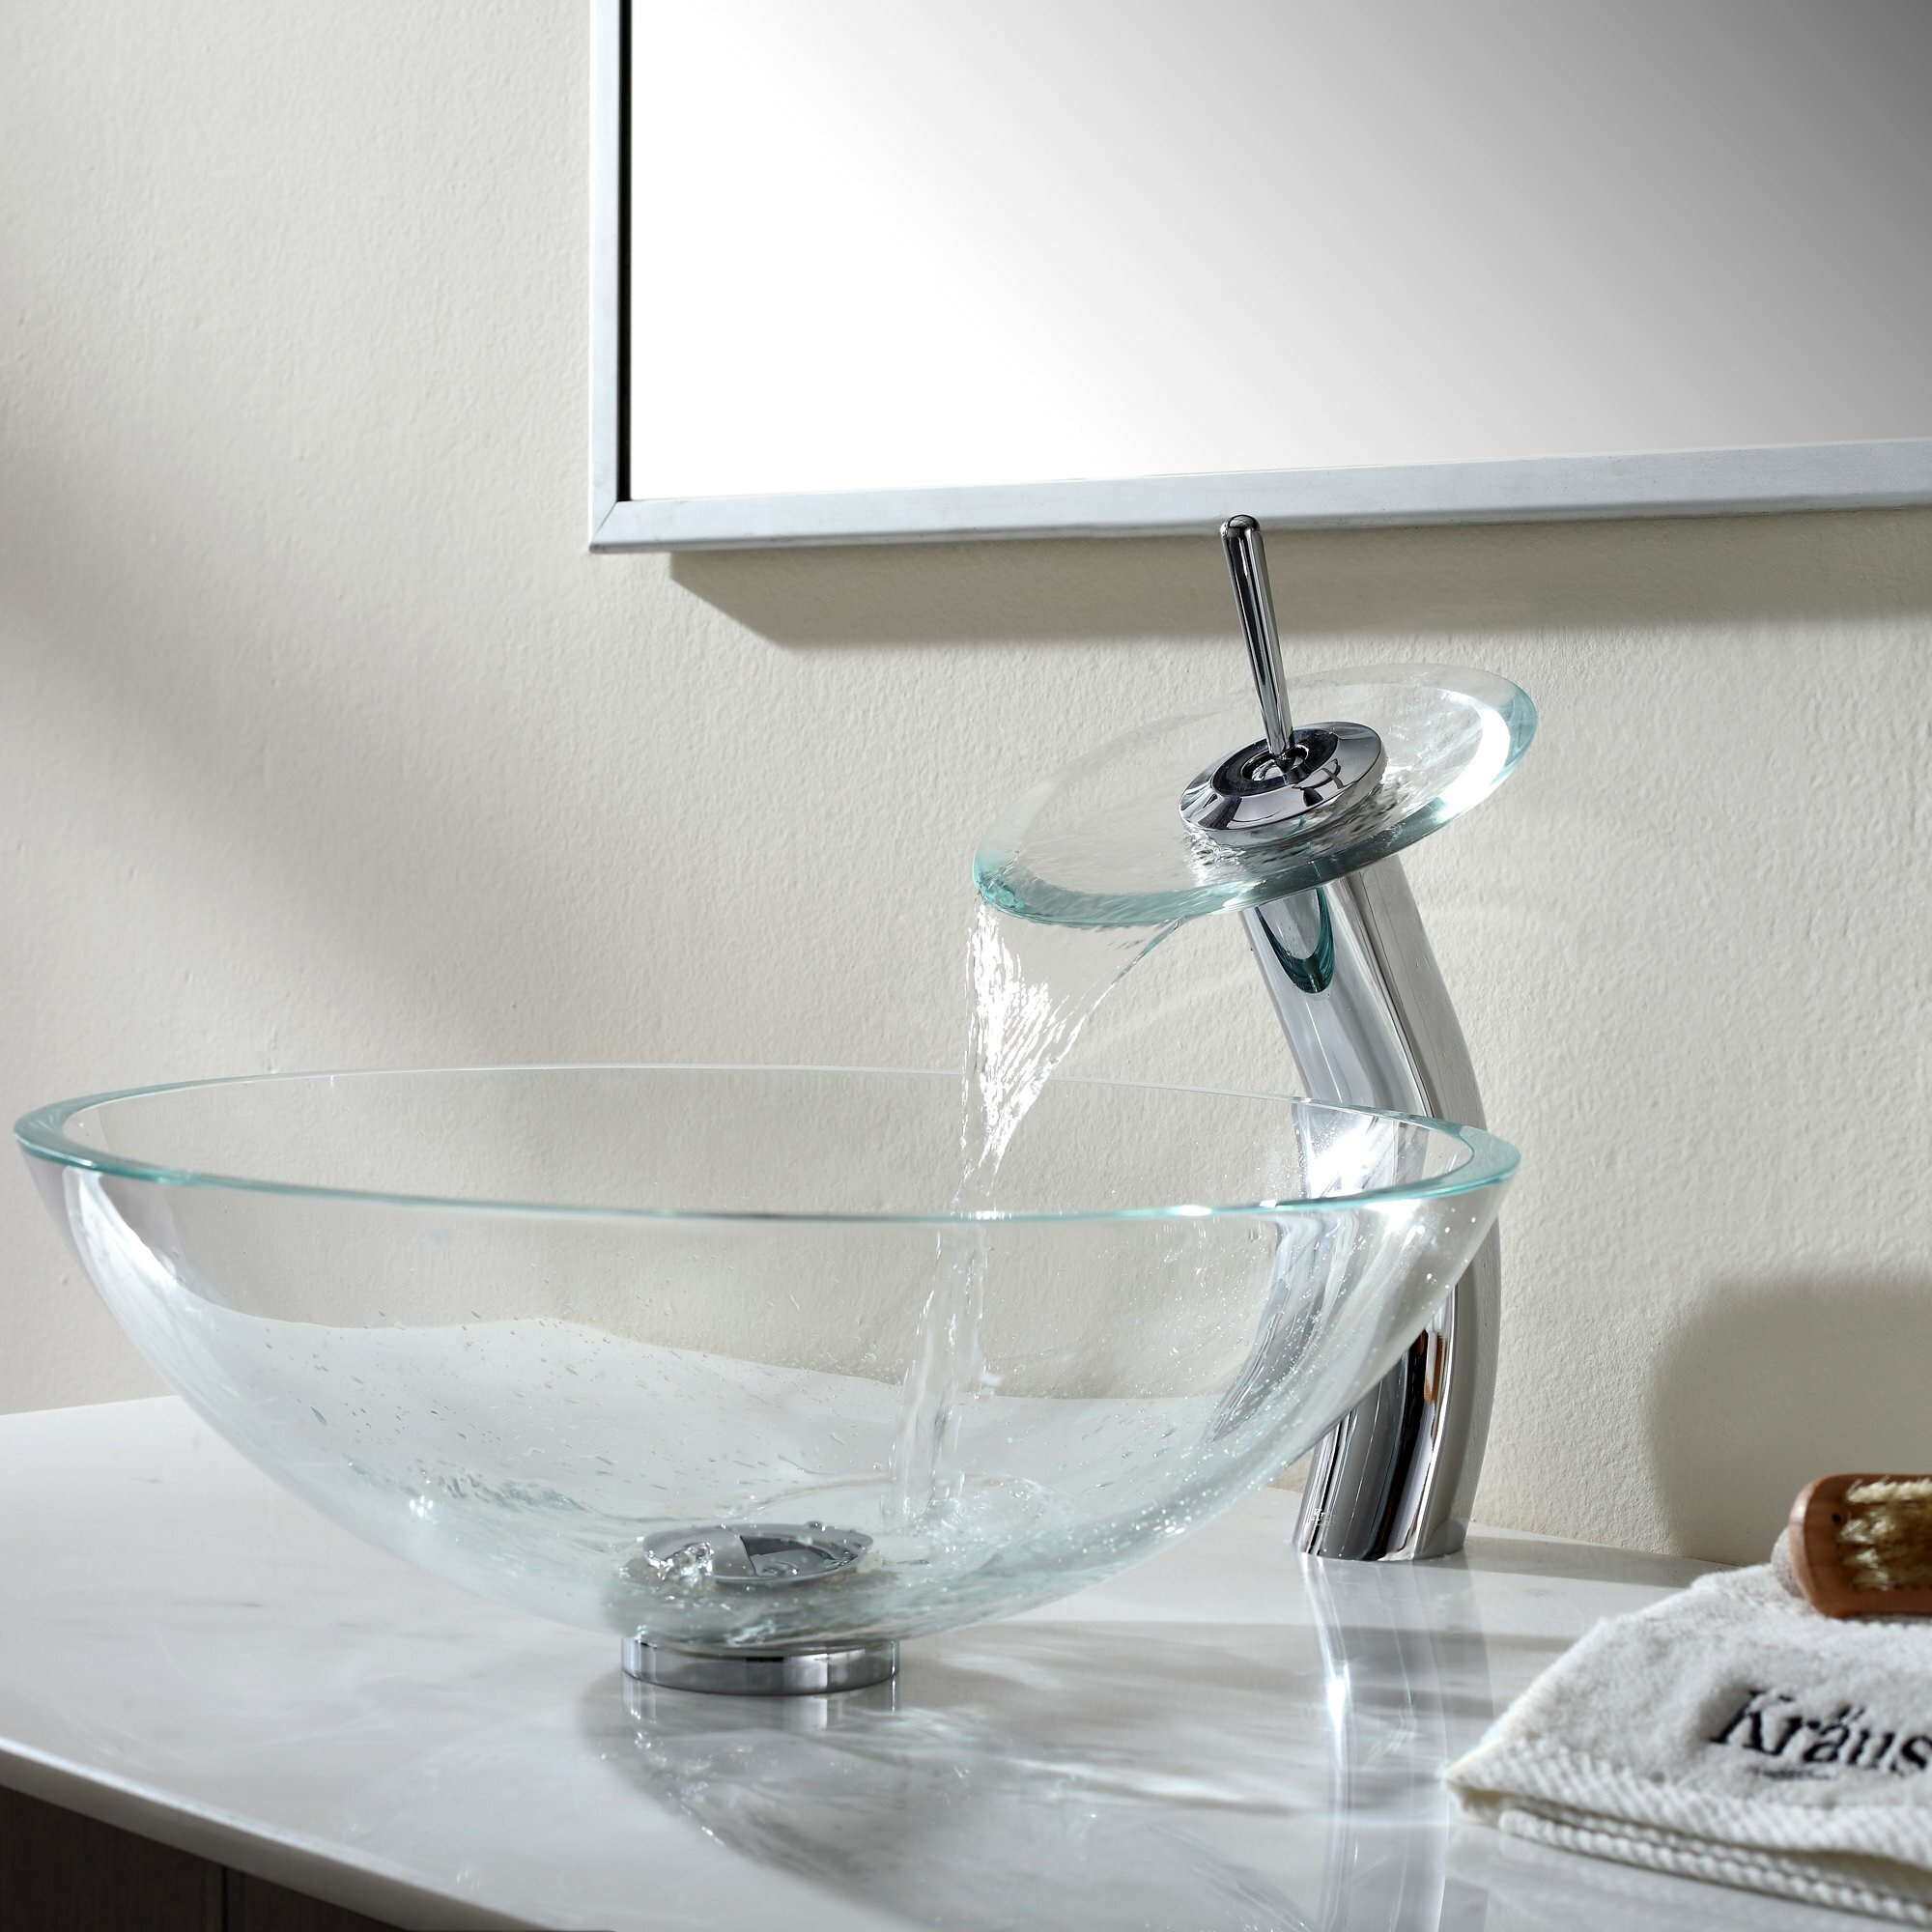 Clear Glass Sink : Kraus Crystal Clear Glass Vessel Sink and Waterfall Faucet & Reviews ...